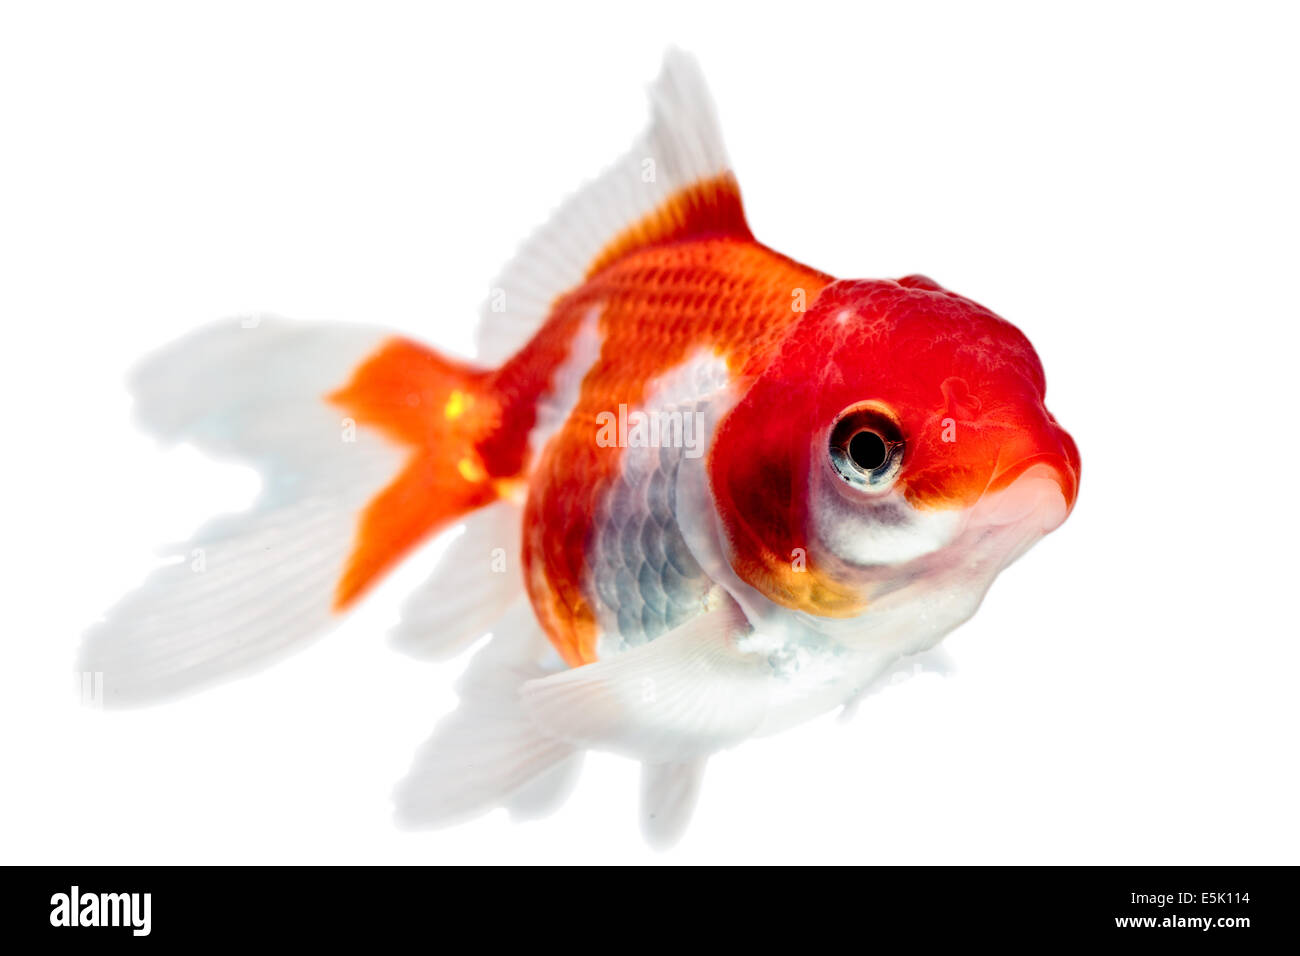 Oranda Goldfish Isolated On White High Quality Studio Shot Manually Removed From Background So The Finnage Is Complete Stock Photo